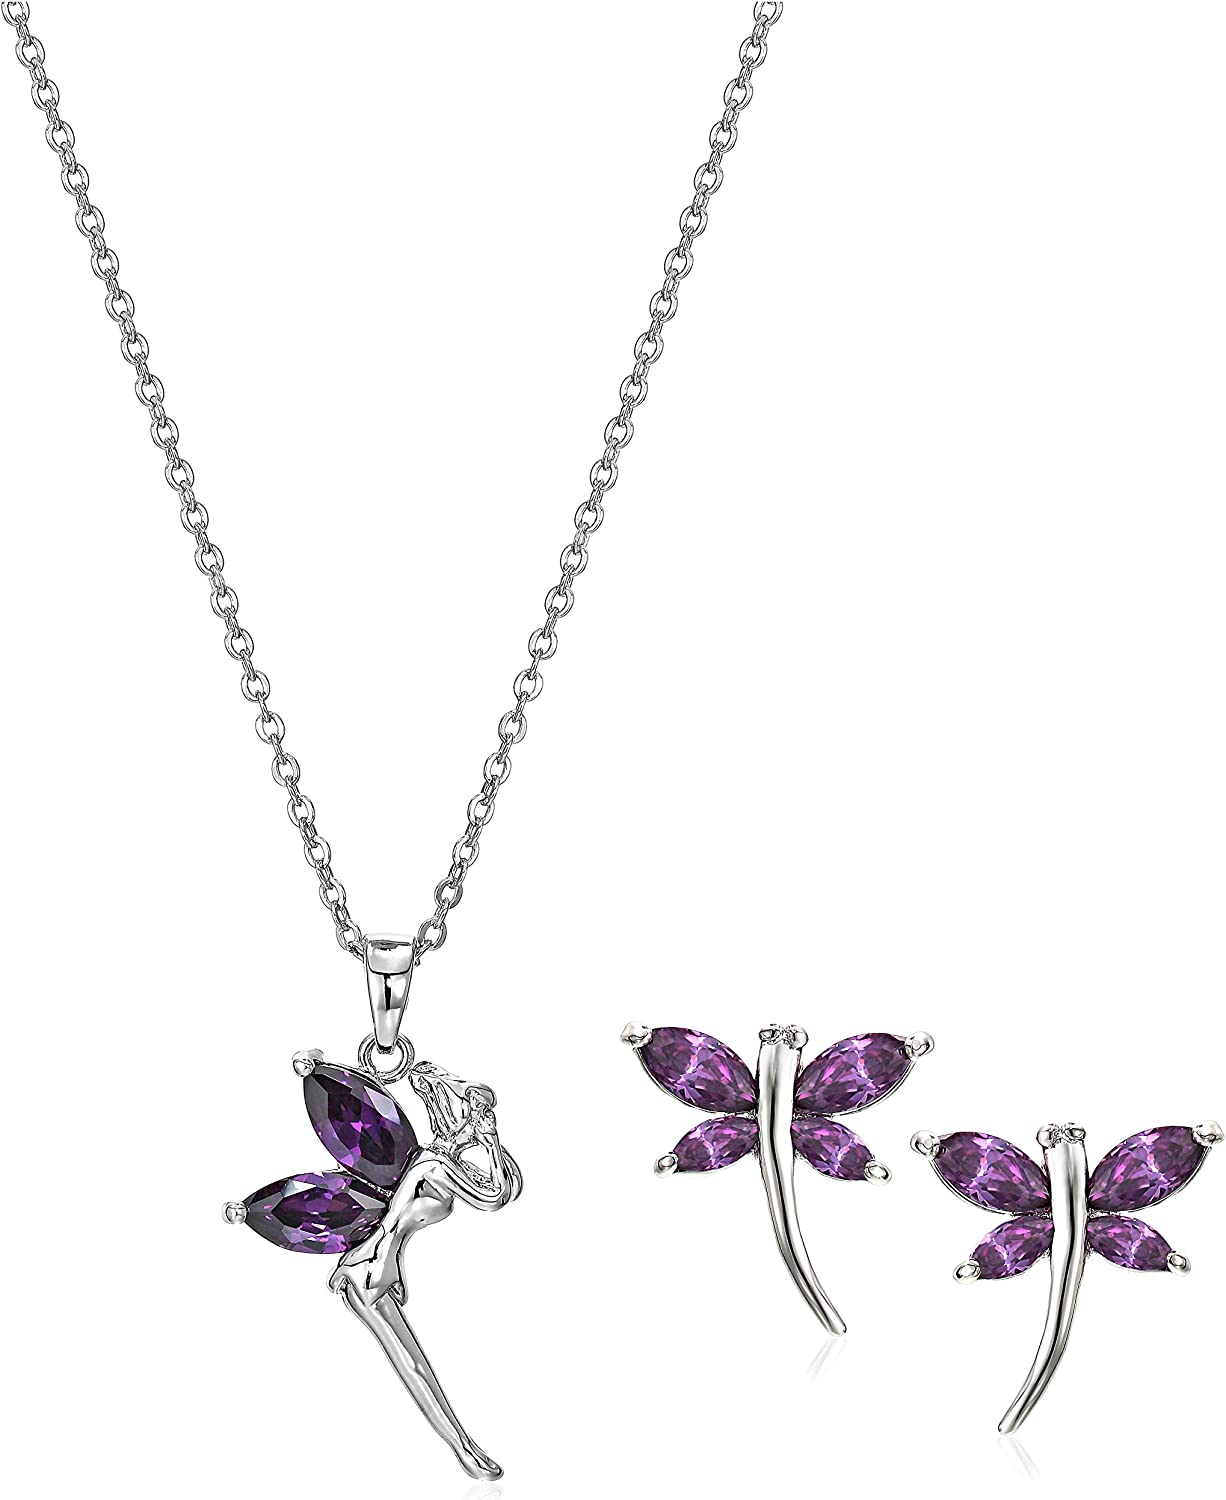 Crystalline Azuria Fairy Tinkerbell Pendant Necklace with Yellow Purple Cubic Zirconia Crystals 18KWhite Gold Plated Colorful Jewelry Necklace for Girls, Teens and Women